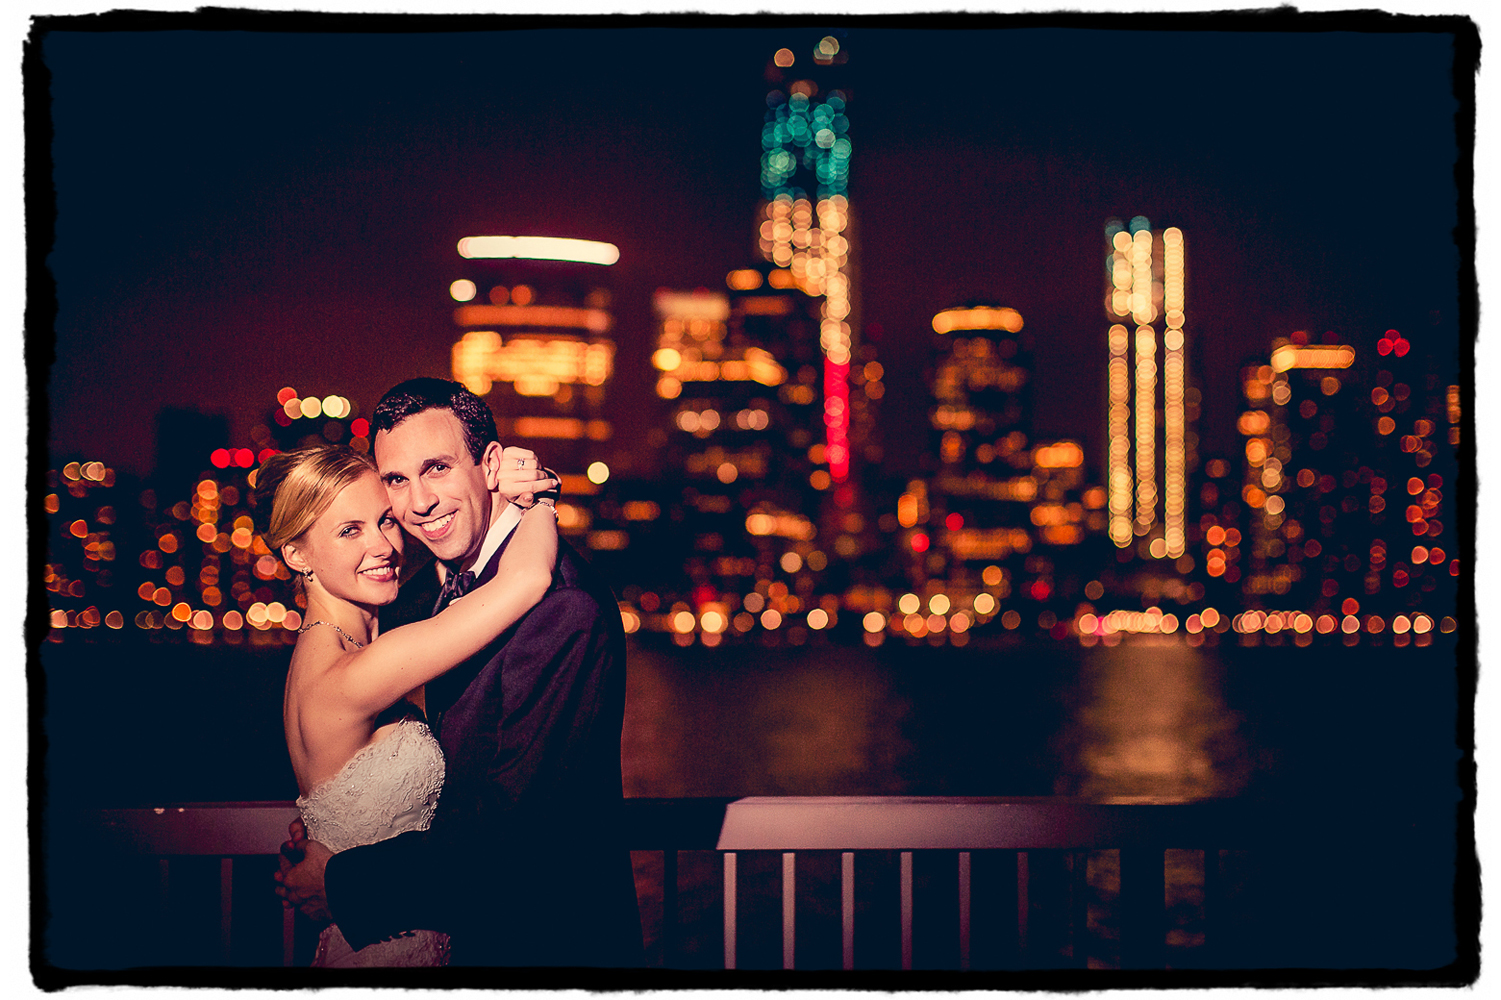 Towards the end of the night I asked Gena and Josh if they'd step outside with me for a picture with the amazing NYC skyline behind them here at the Hyatt in Jersey City.